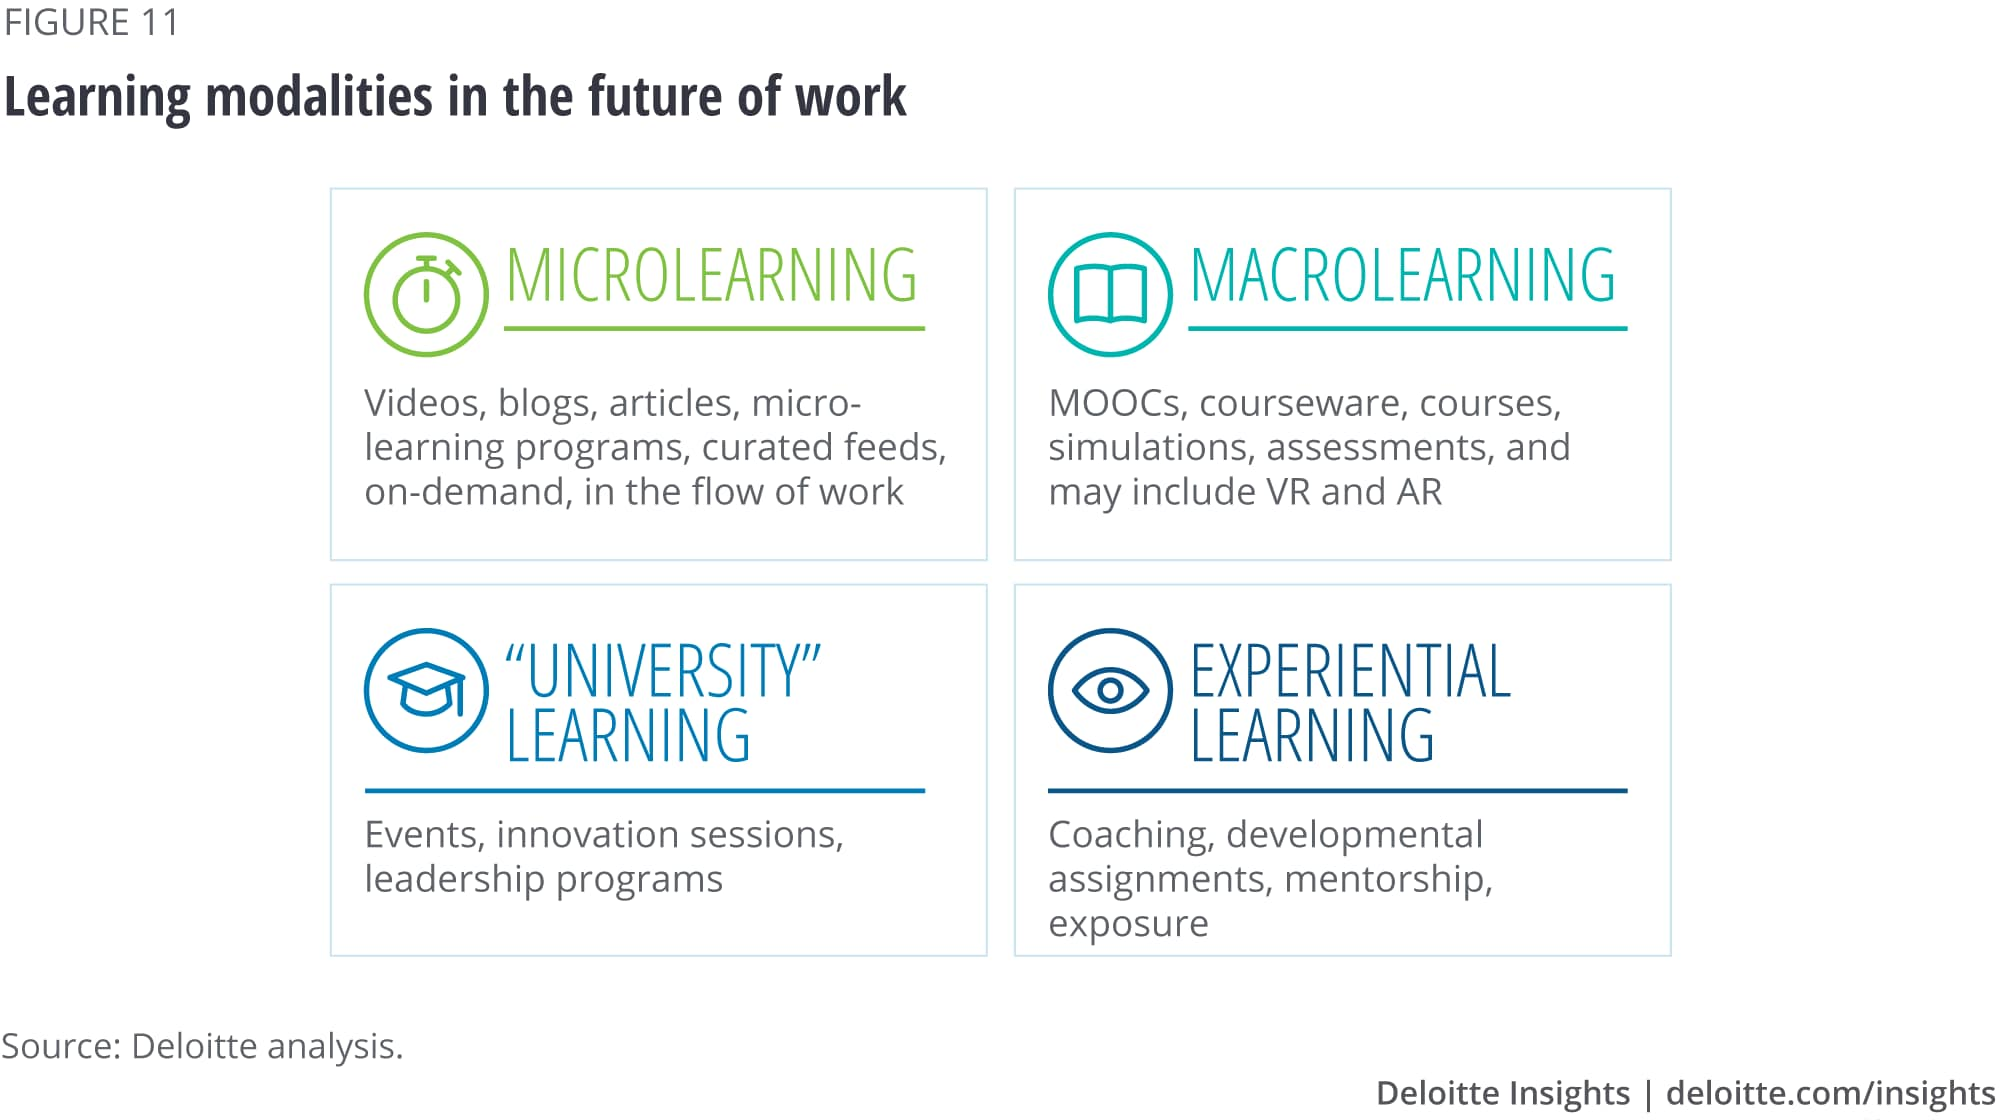 Learning modalities in the future of work